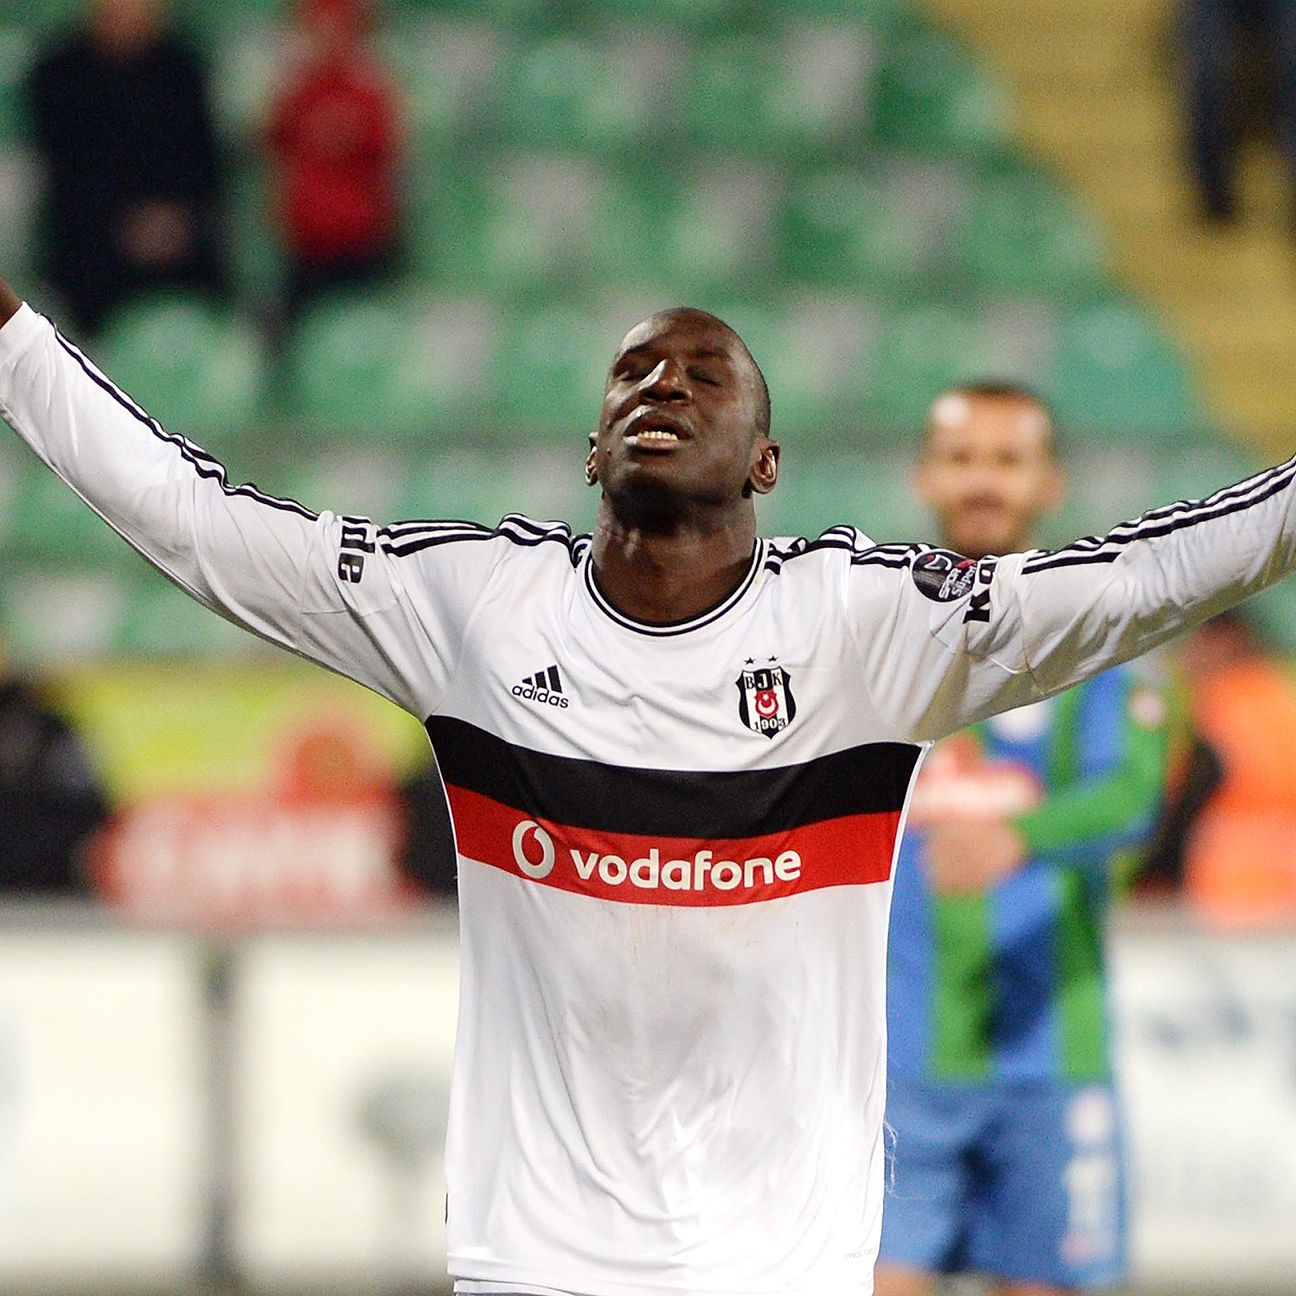 Ba has Besiktas in the hunt for their first Super Lig title since 2009.